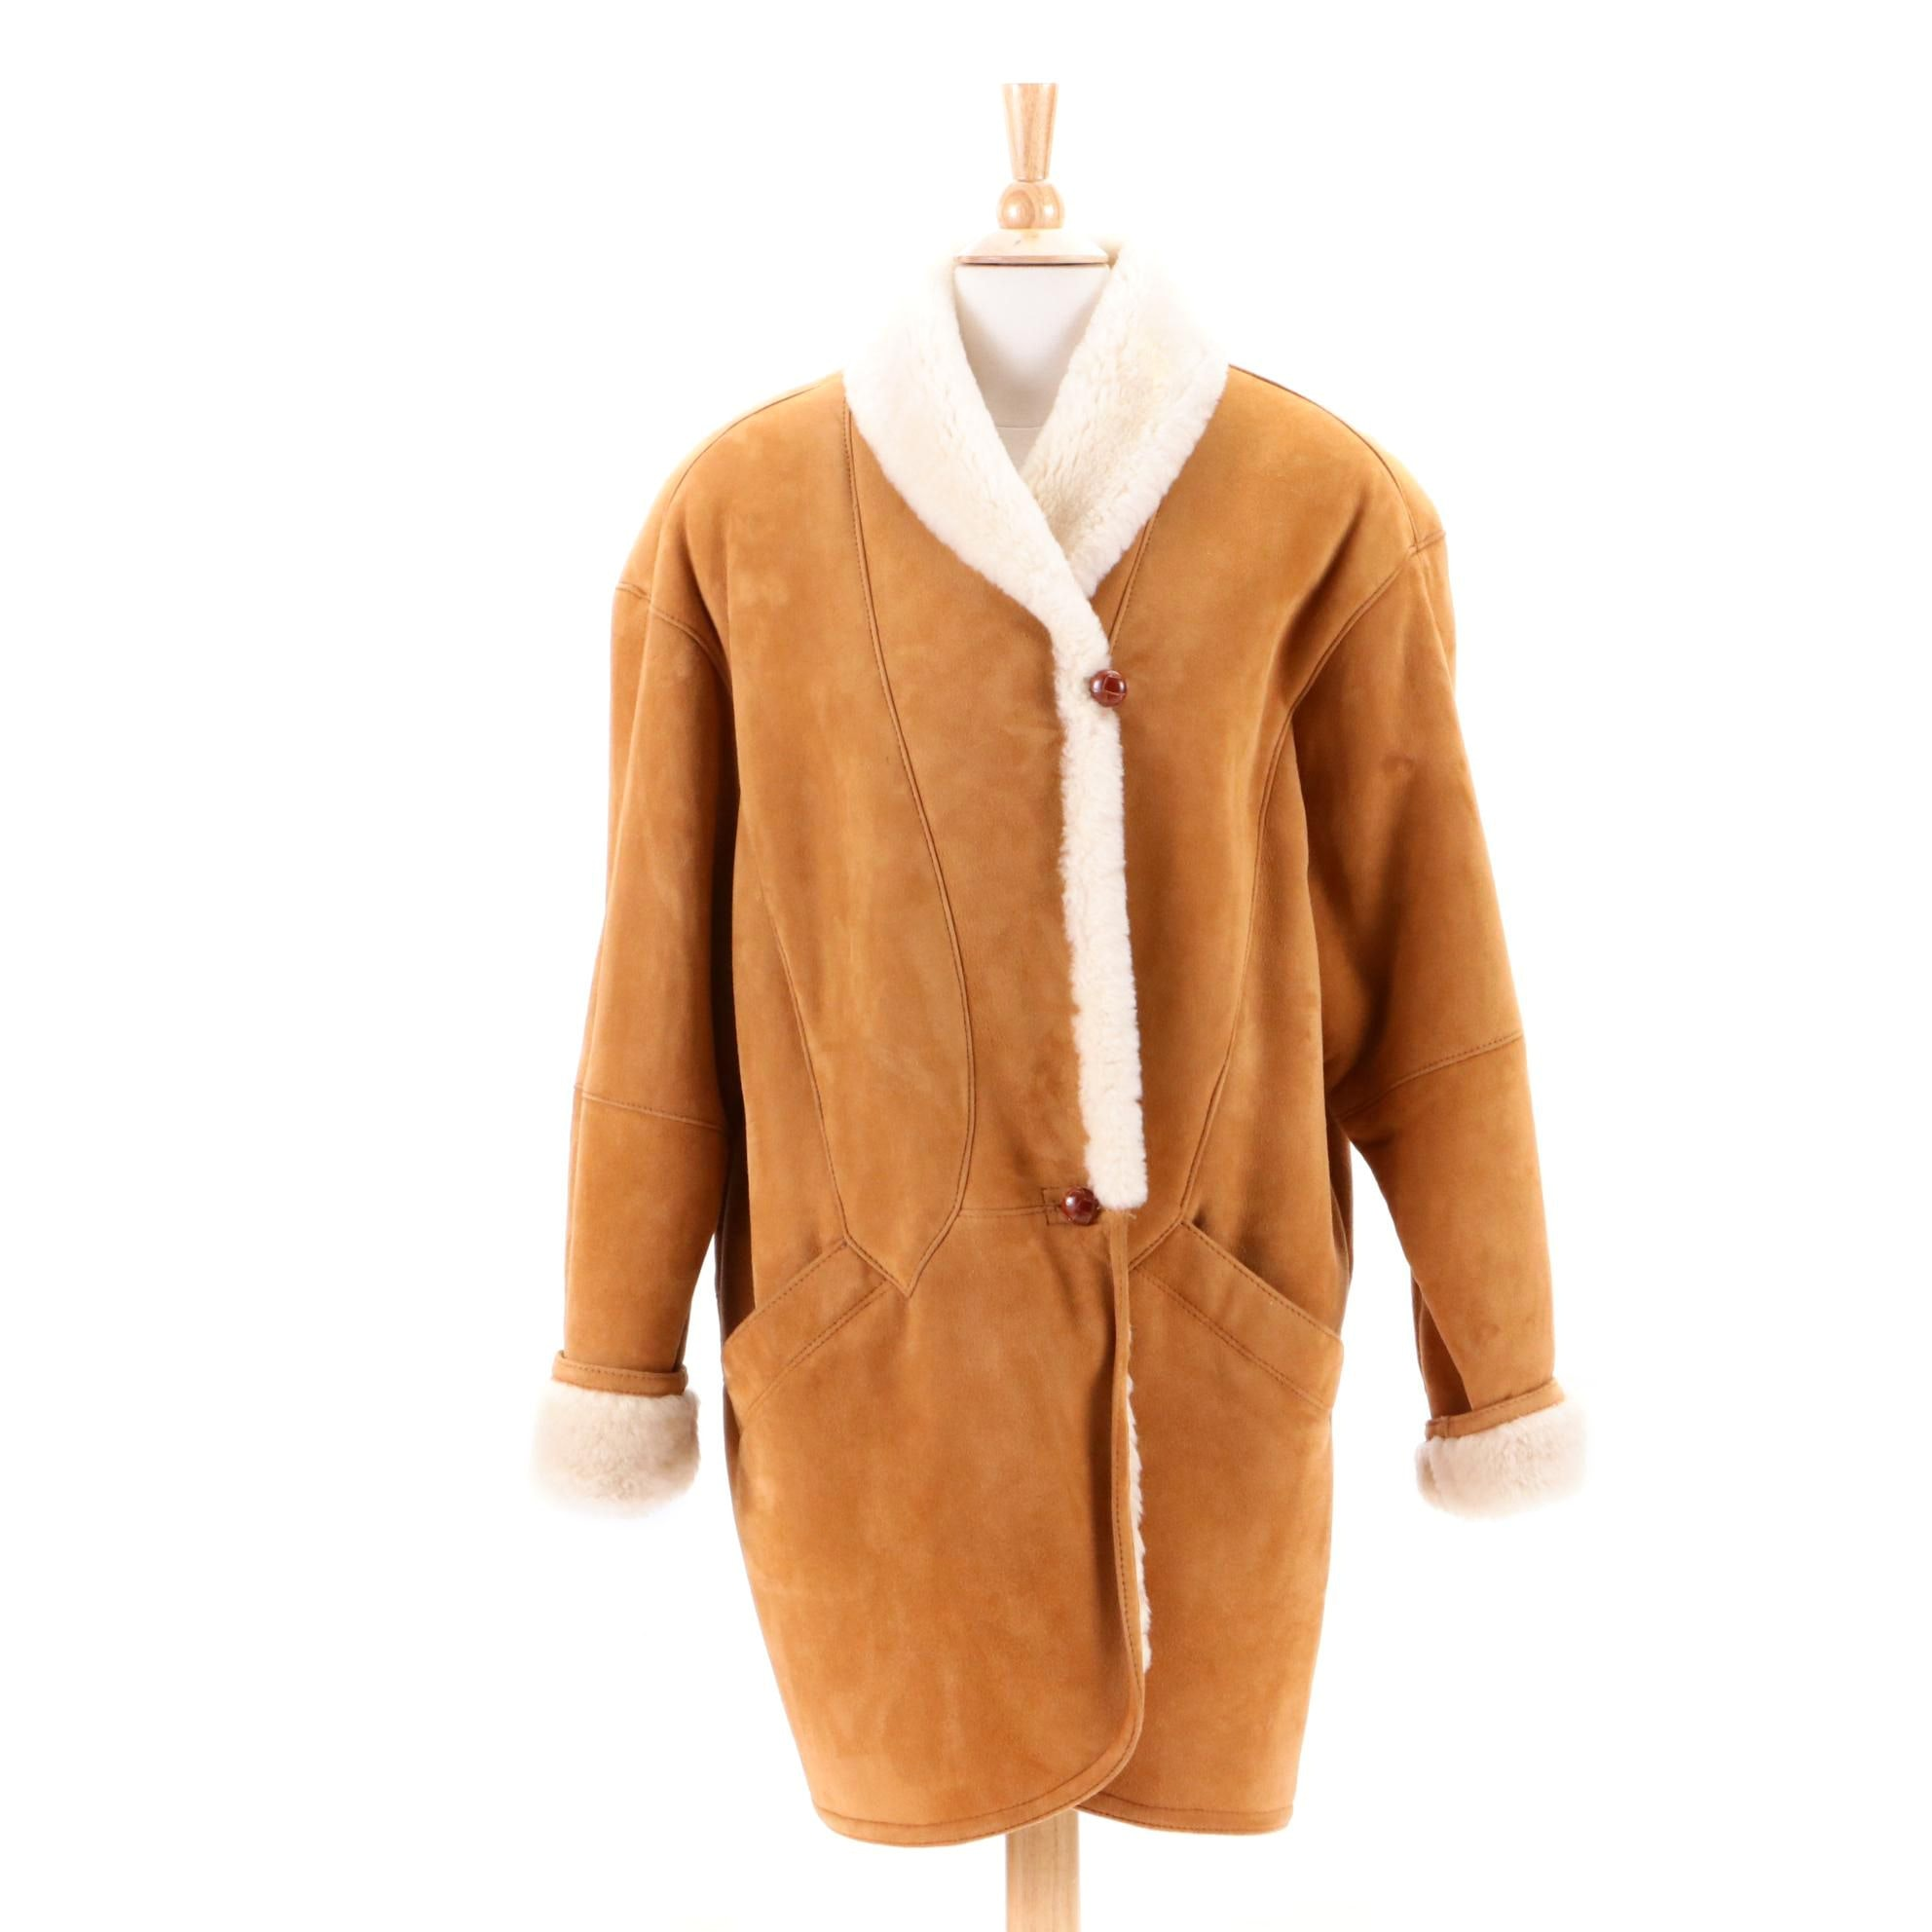 Women's Jacobson's Sheepskin and Shearling Coat